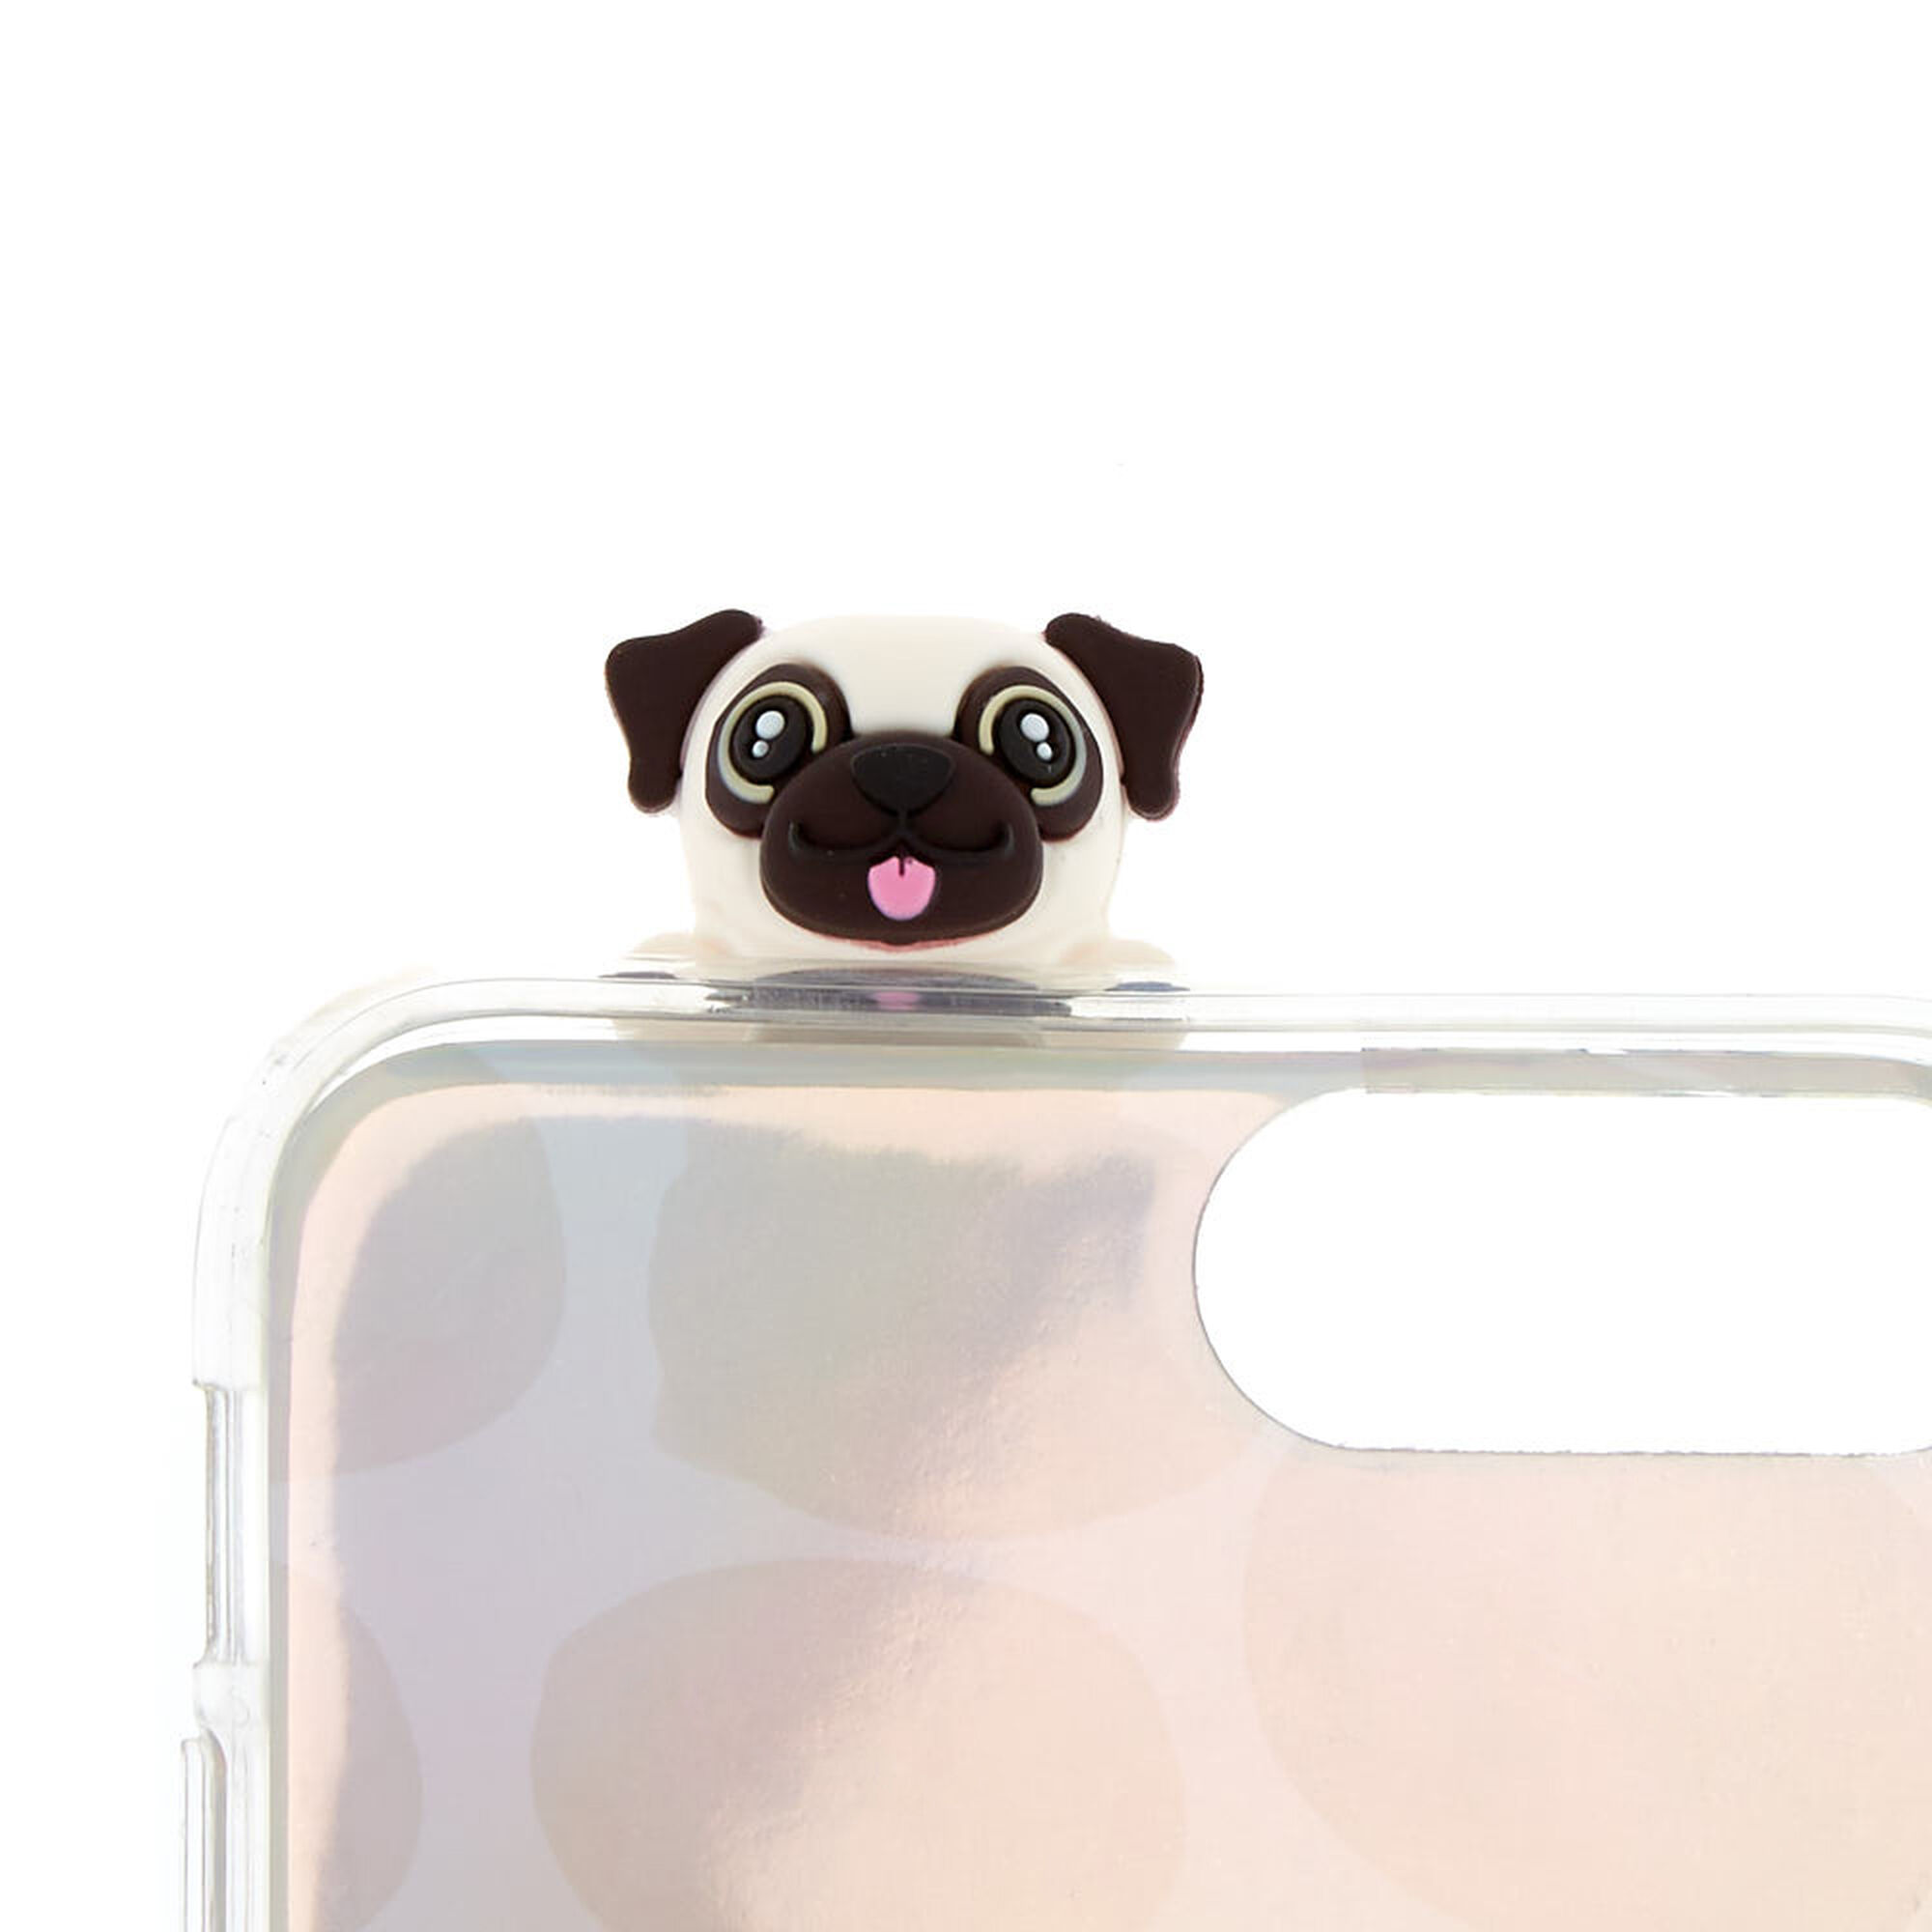 sports shoes f429f eca66 Marley Pug Pop Over Phone Case - Fits iPhone 6/7/8 Plus